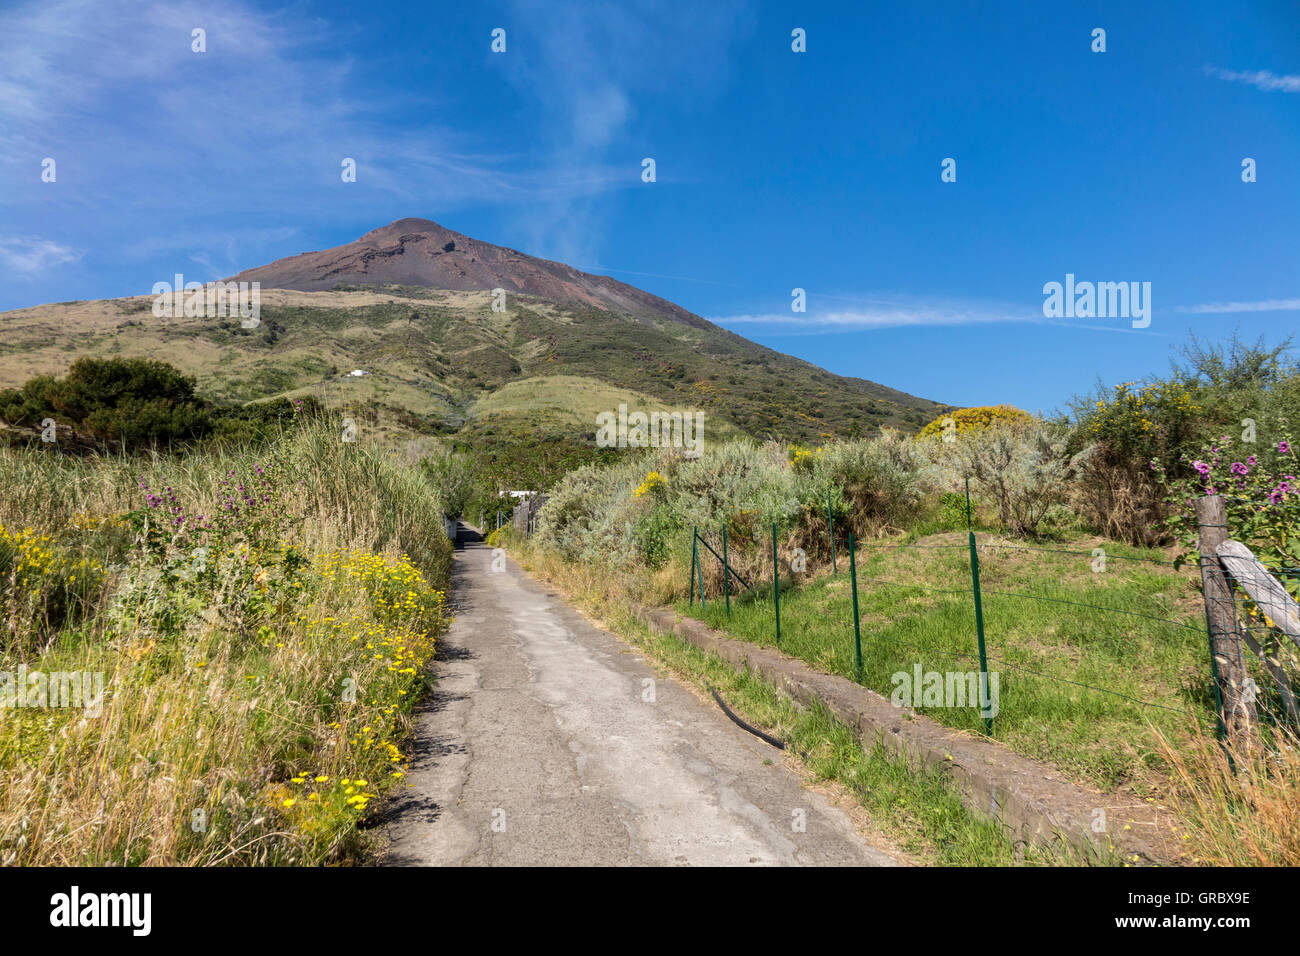 Unpaved Road Through Meadows, In The Background Vulcan Stromboli, Aeolian Islands, Italy - Stock Image